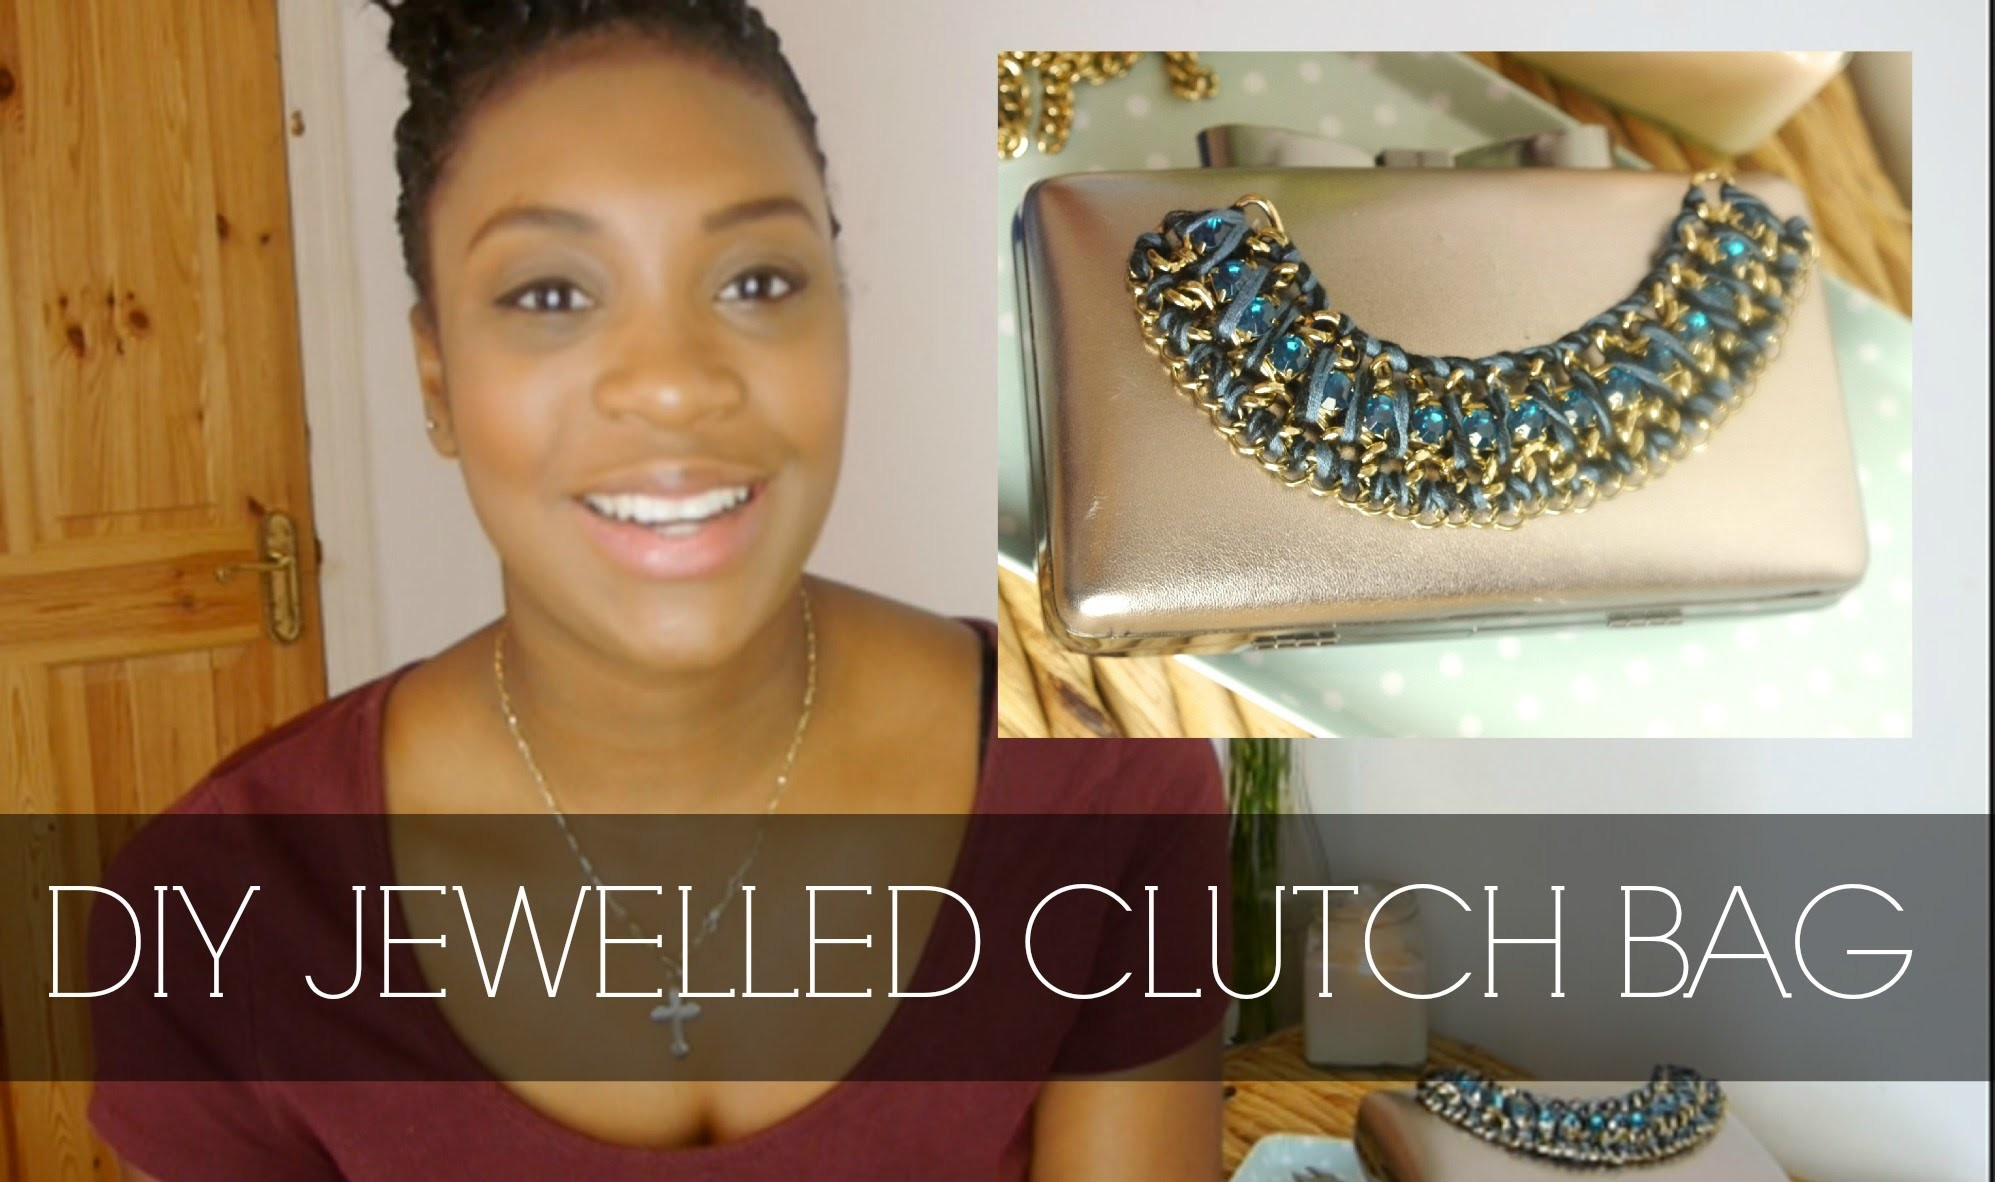 DIY Bejewelled Clutch Bag